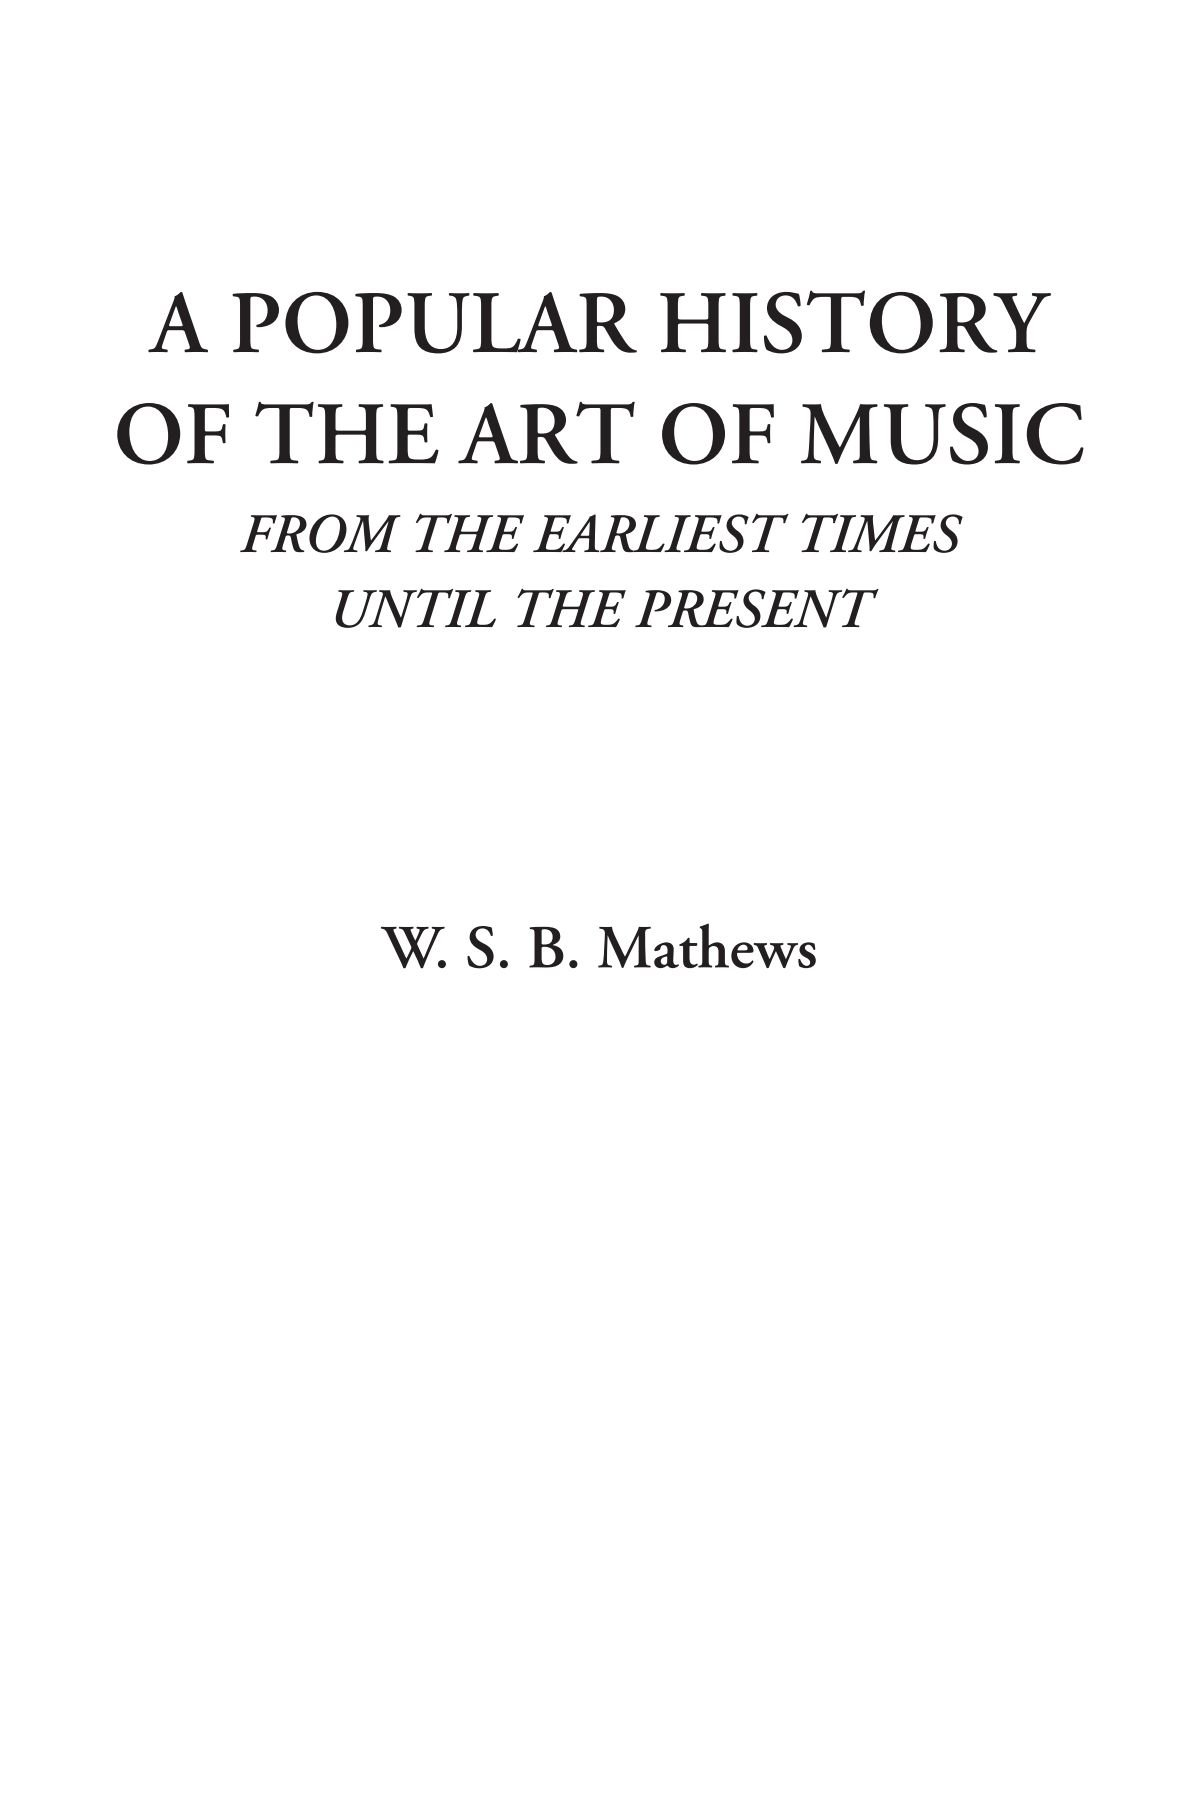 Download A Popular History of the Art of Music (From the Earliest Times Until the Present) ebook